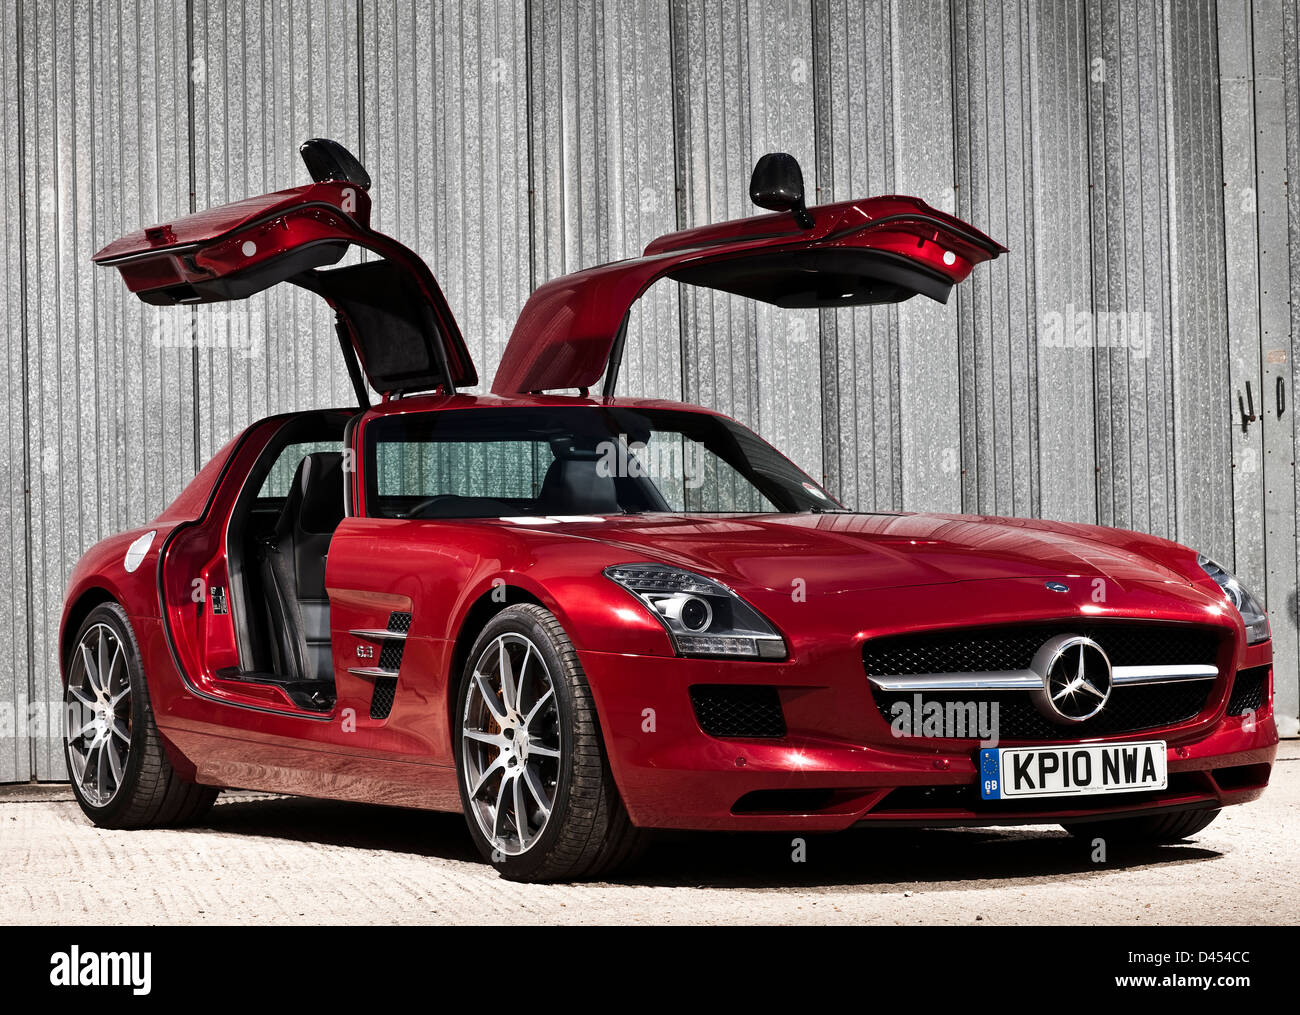 Red mercedes benz sls amg luxury car with wing doors for Mercedes benz with wing doors